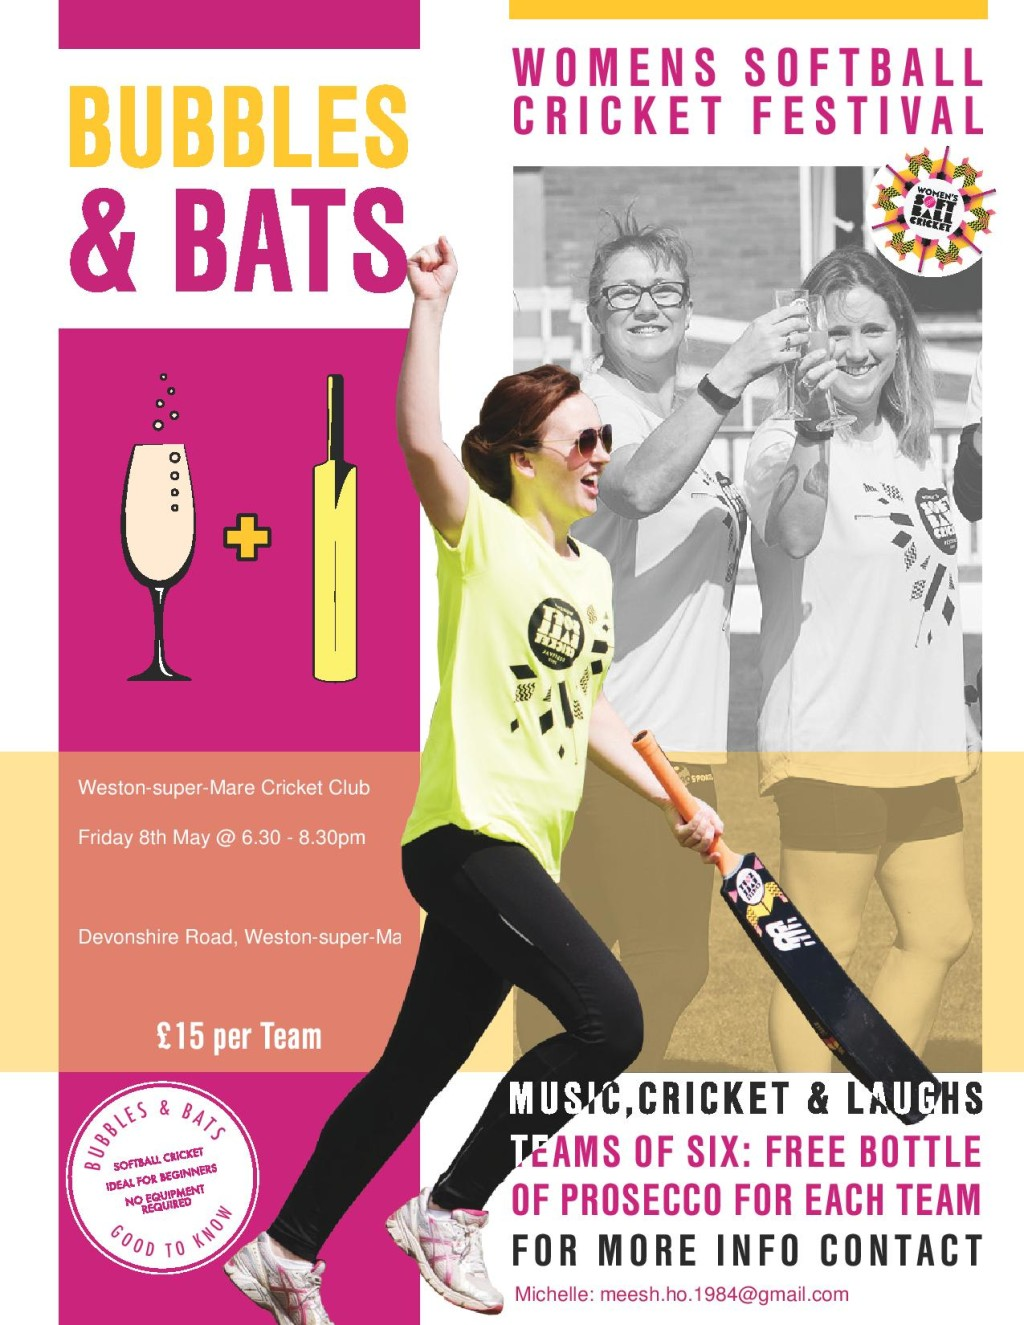 Bubbles & Bats softball cricket festival coming to WSMCC